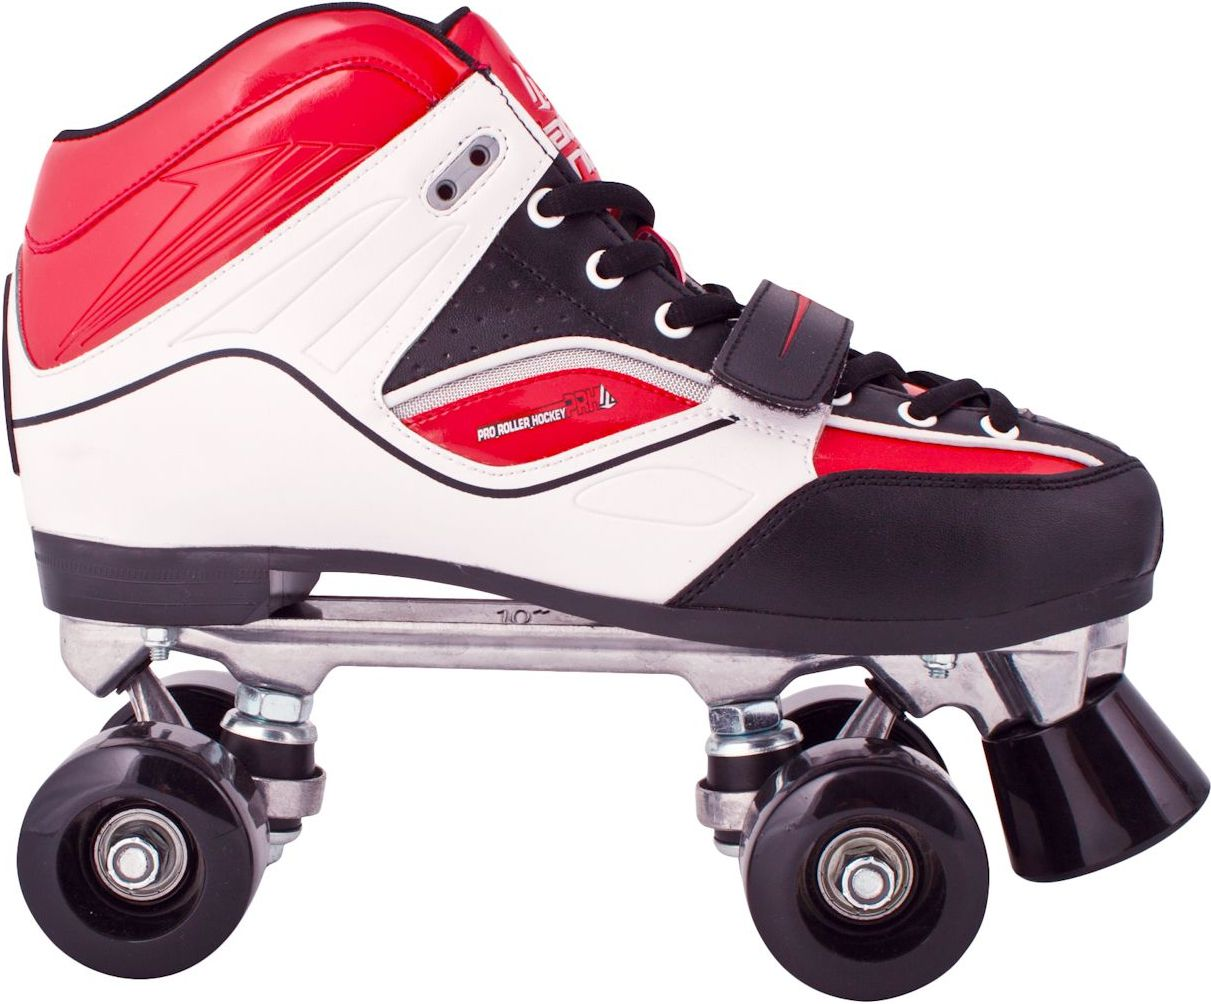 JACK LONDON Wrotki Pro Roller Hockey Senior 231533 rozmiar 42 - WIKR-1012189